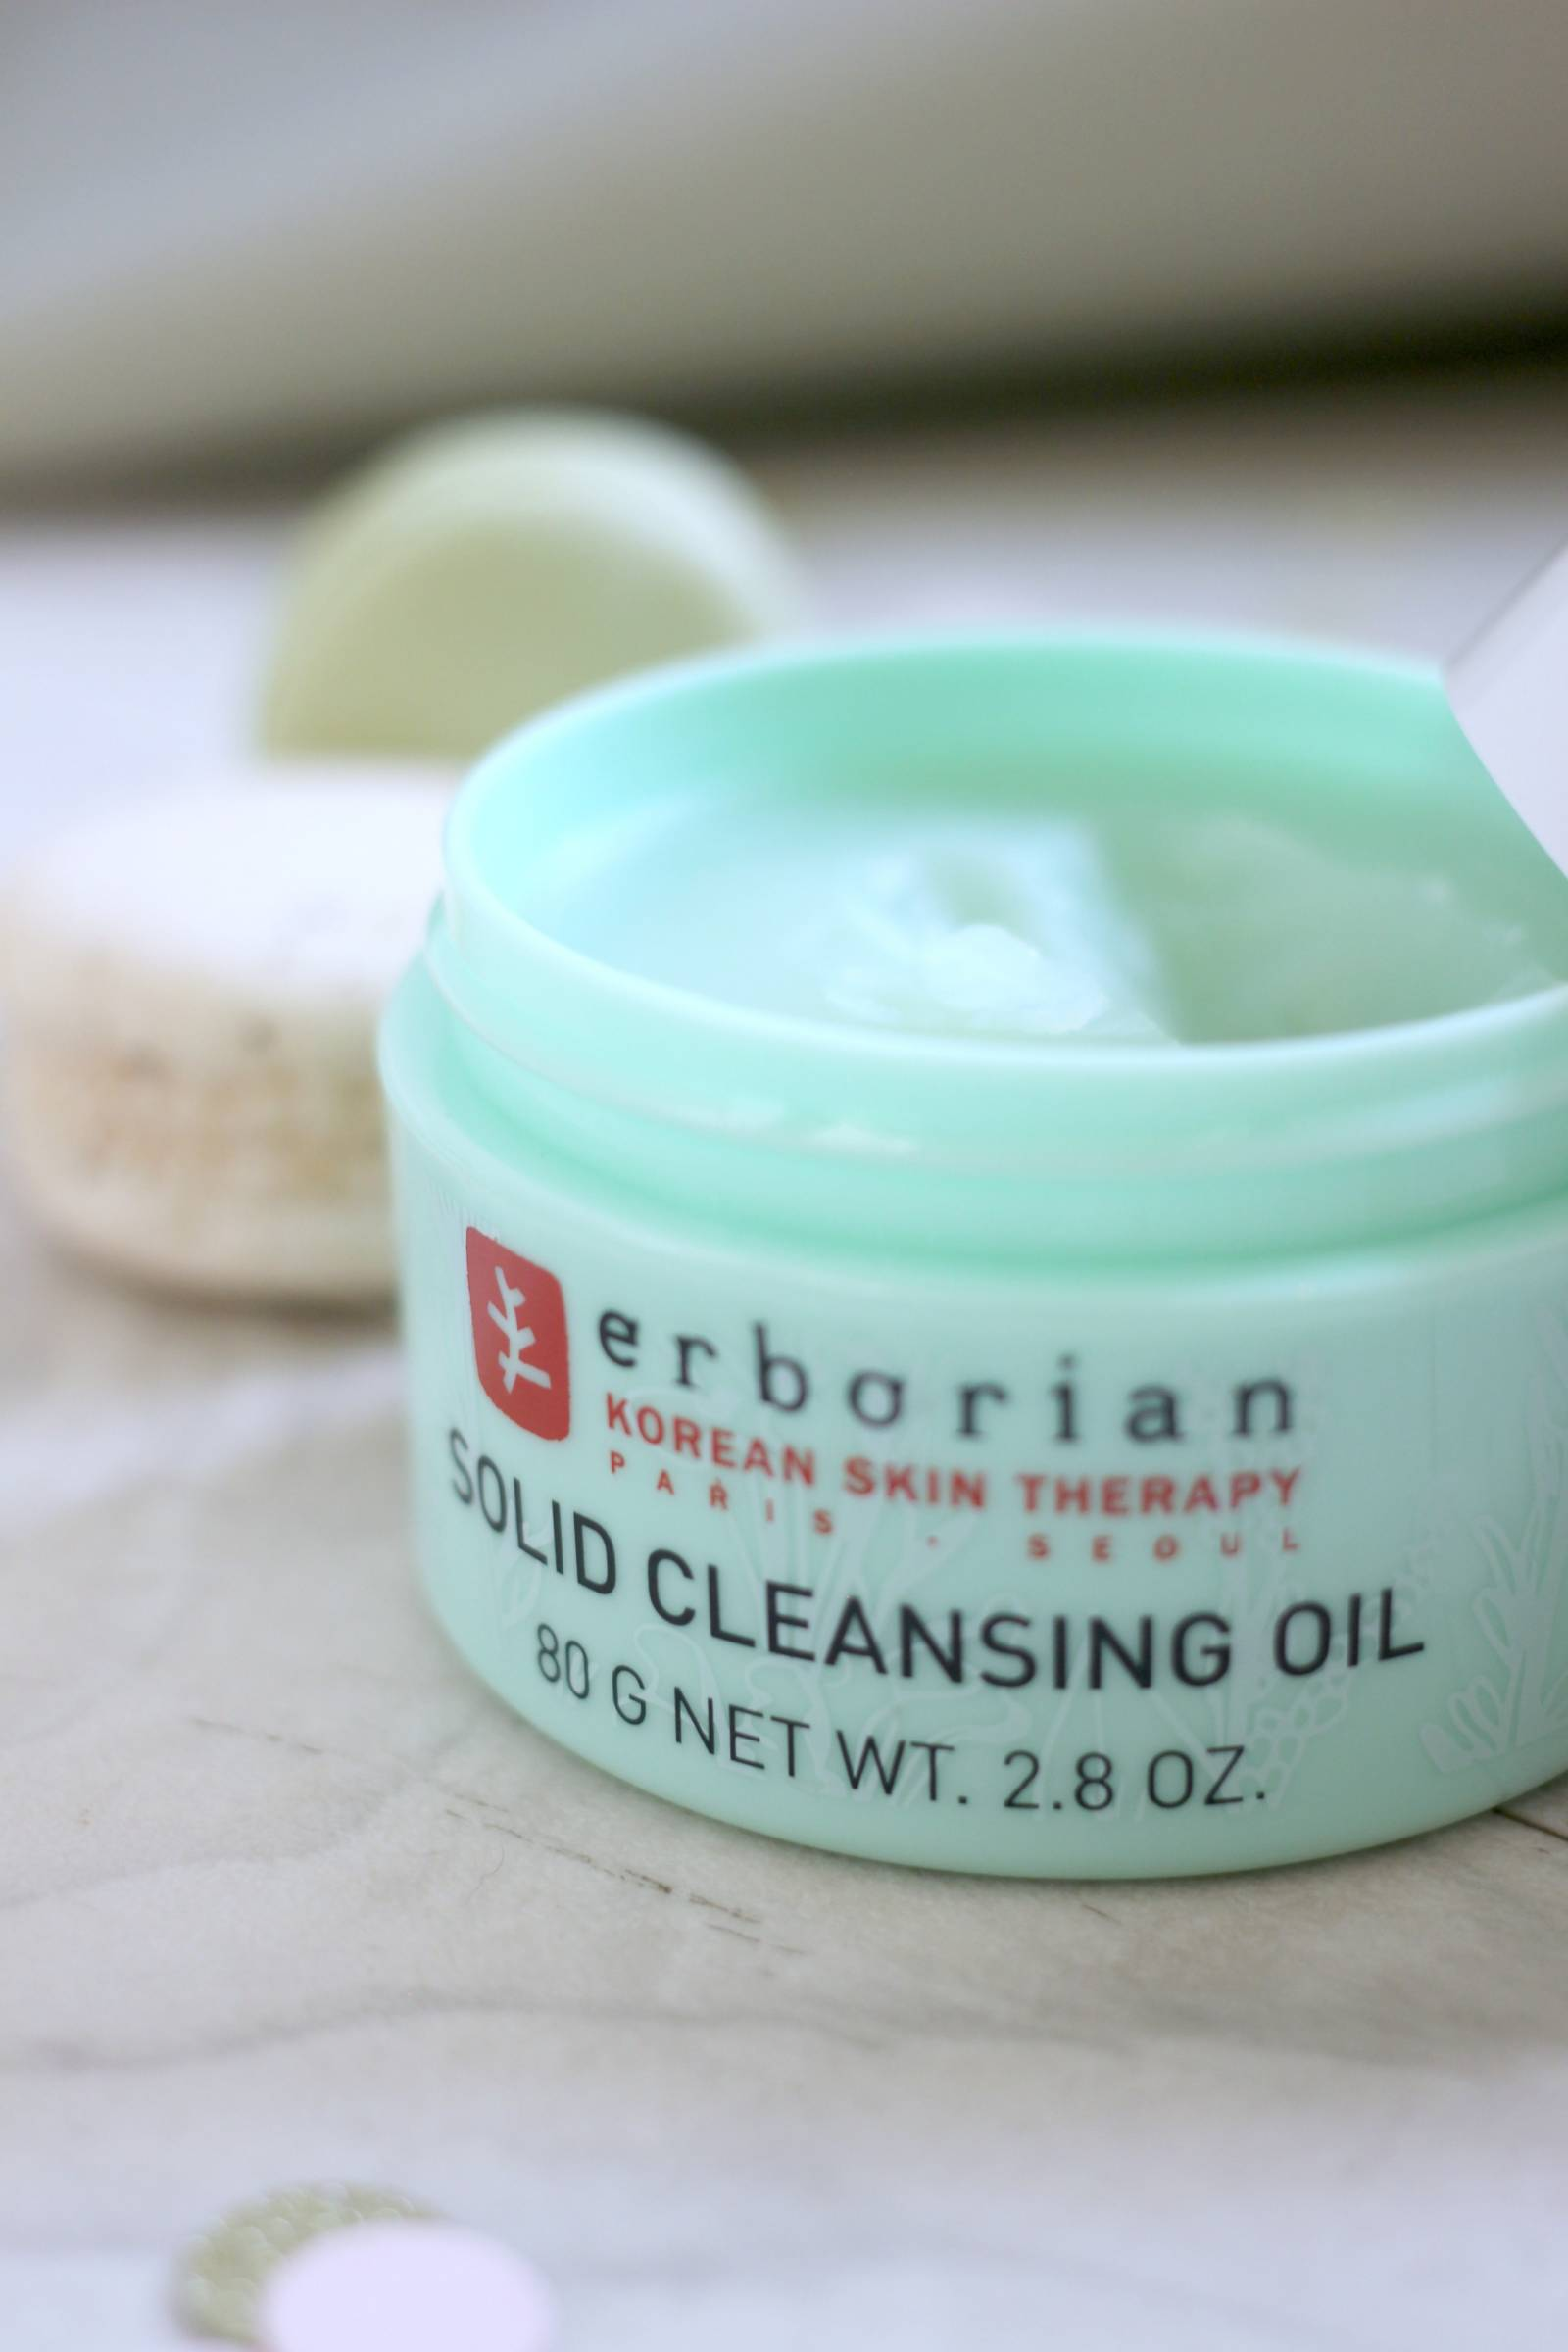 3 Beauty Trends for 2016 - Glowing Skin, Blush, Korean Skincare Erborian